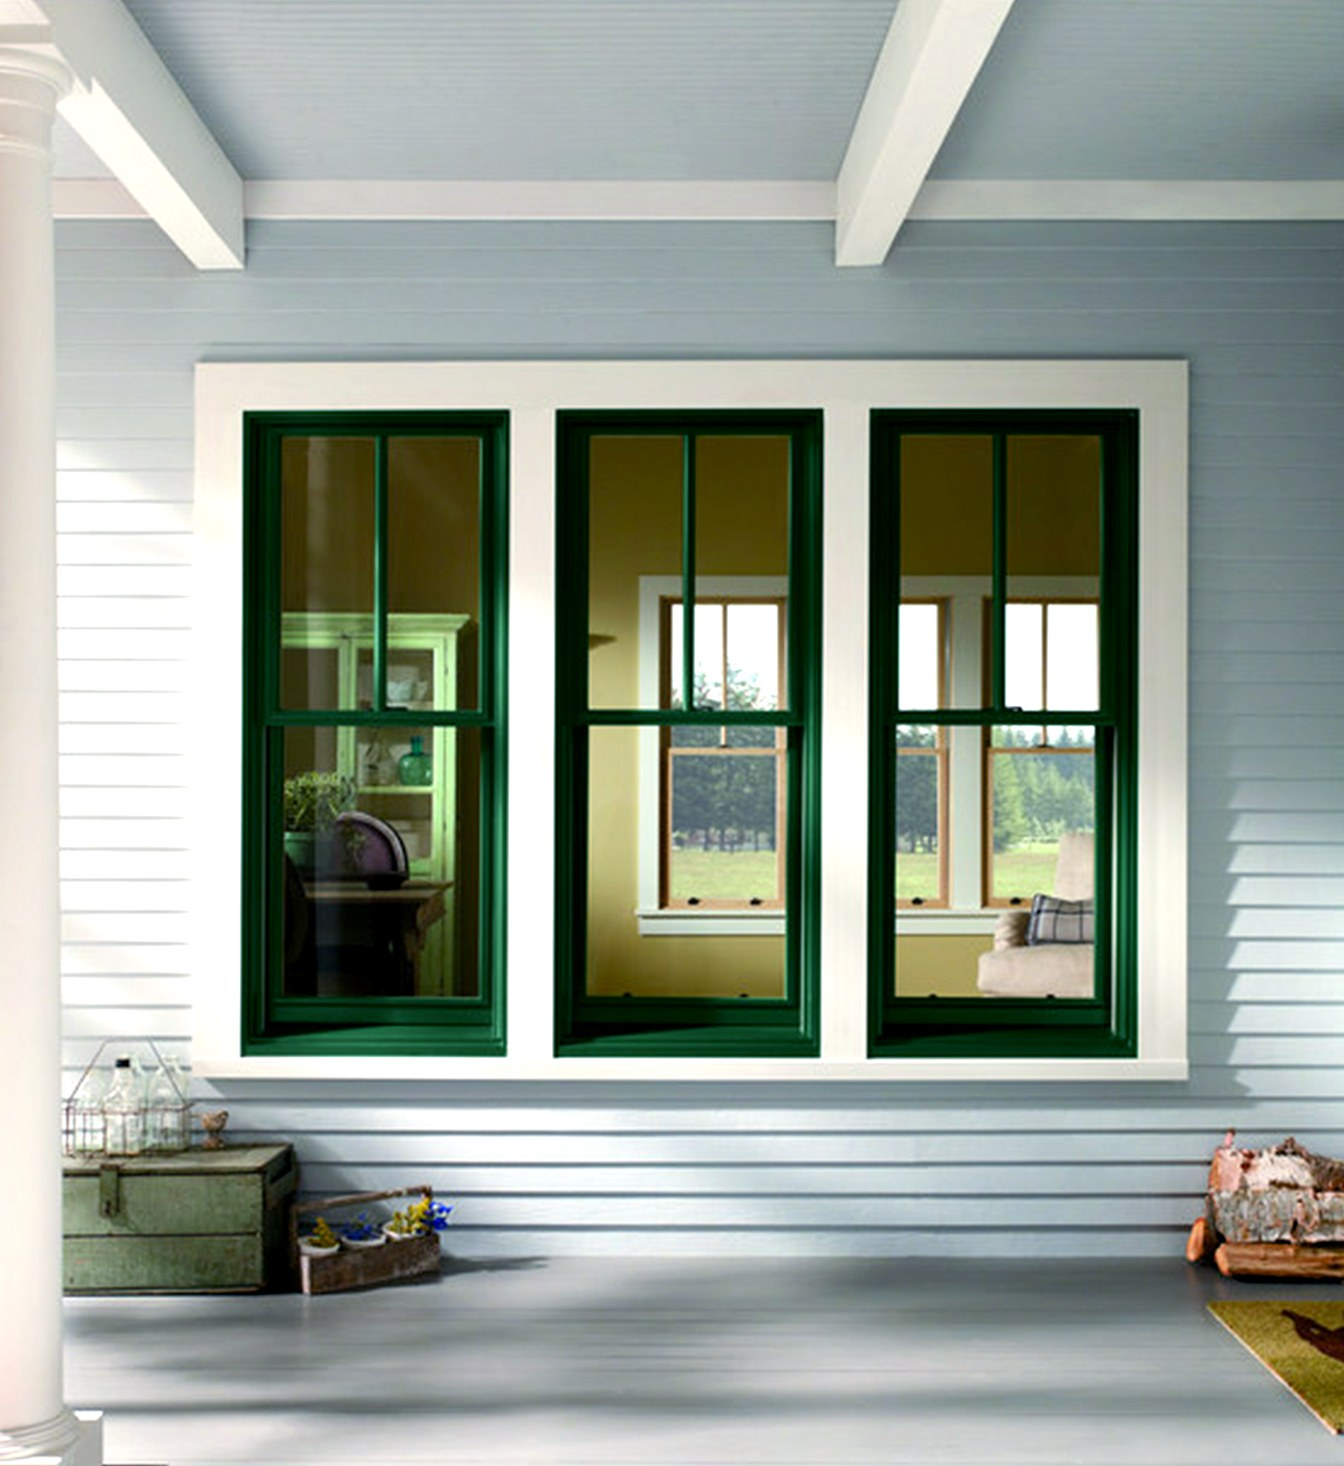 Gallery design center energy efficient windows temple tx for Which windows are the most energy efficient